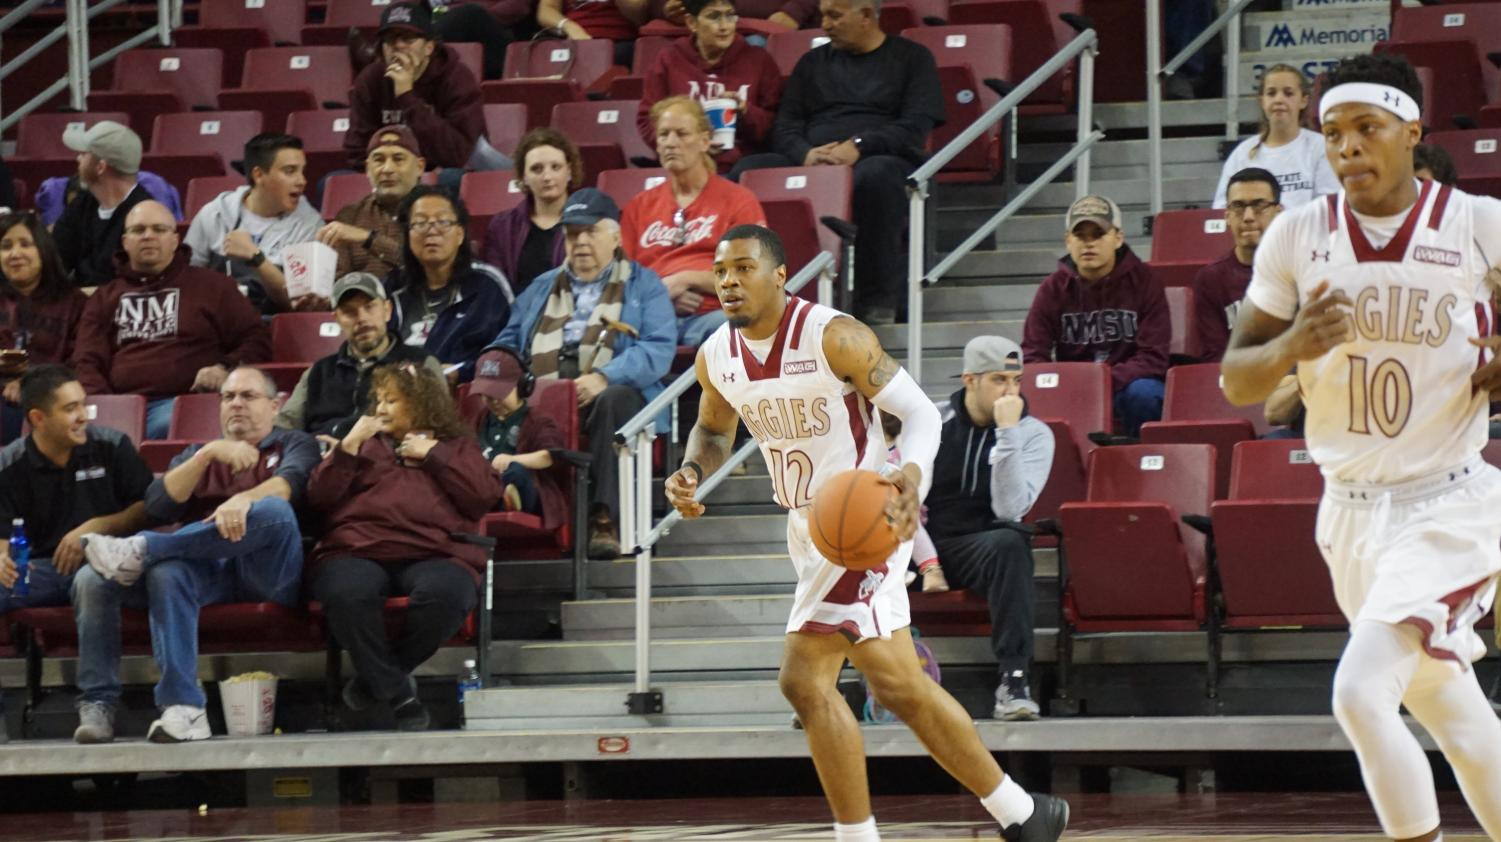 NMSU's AJ Harris and Jemerrio Jones look to move the ball up court Thursday night in a blow out win against CSUB.